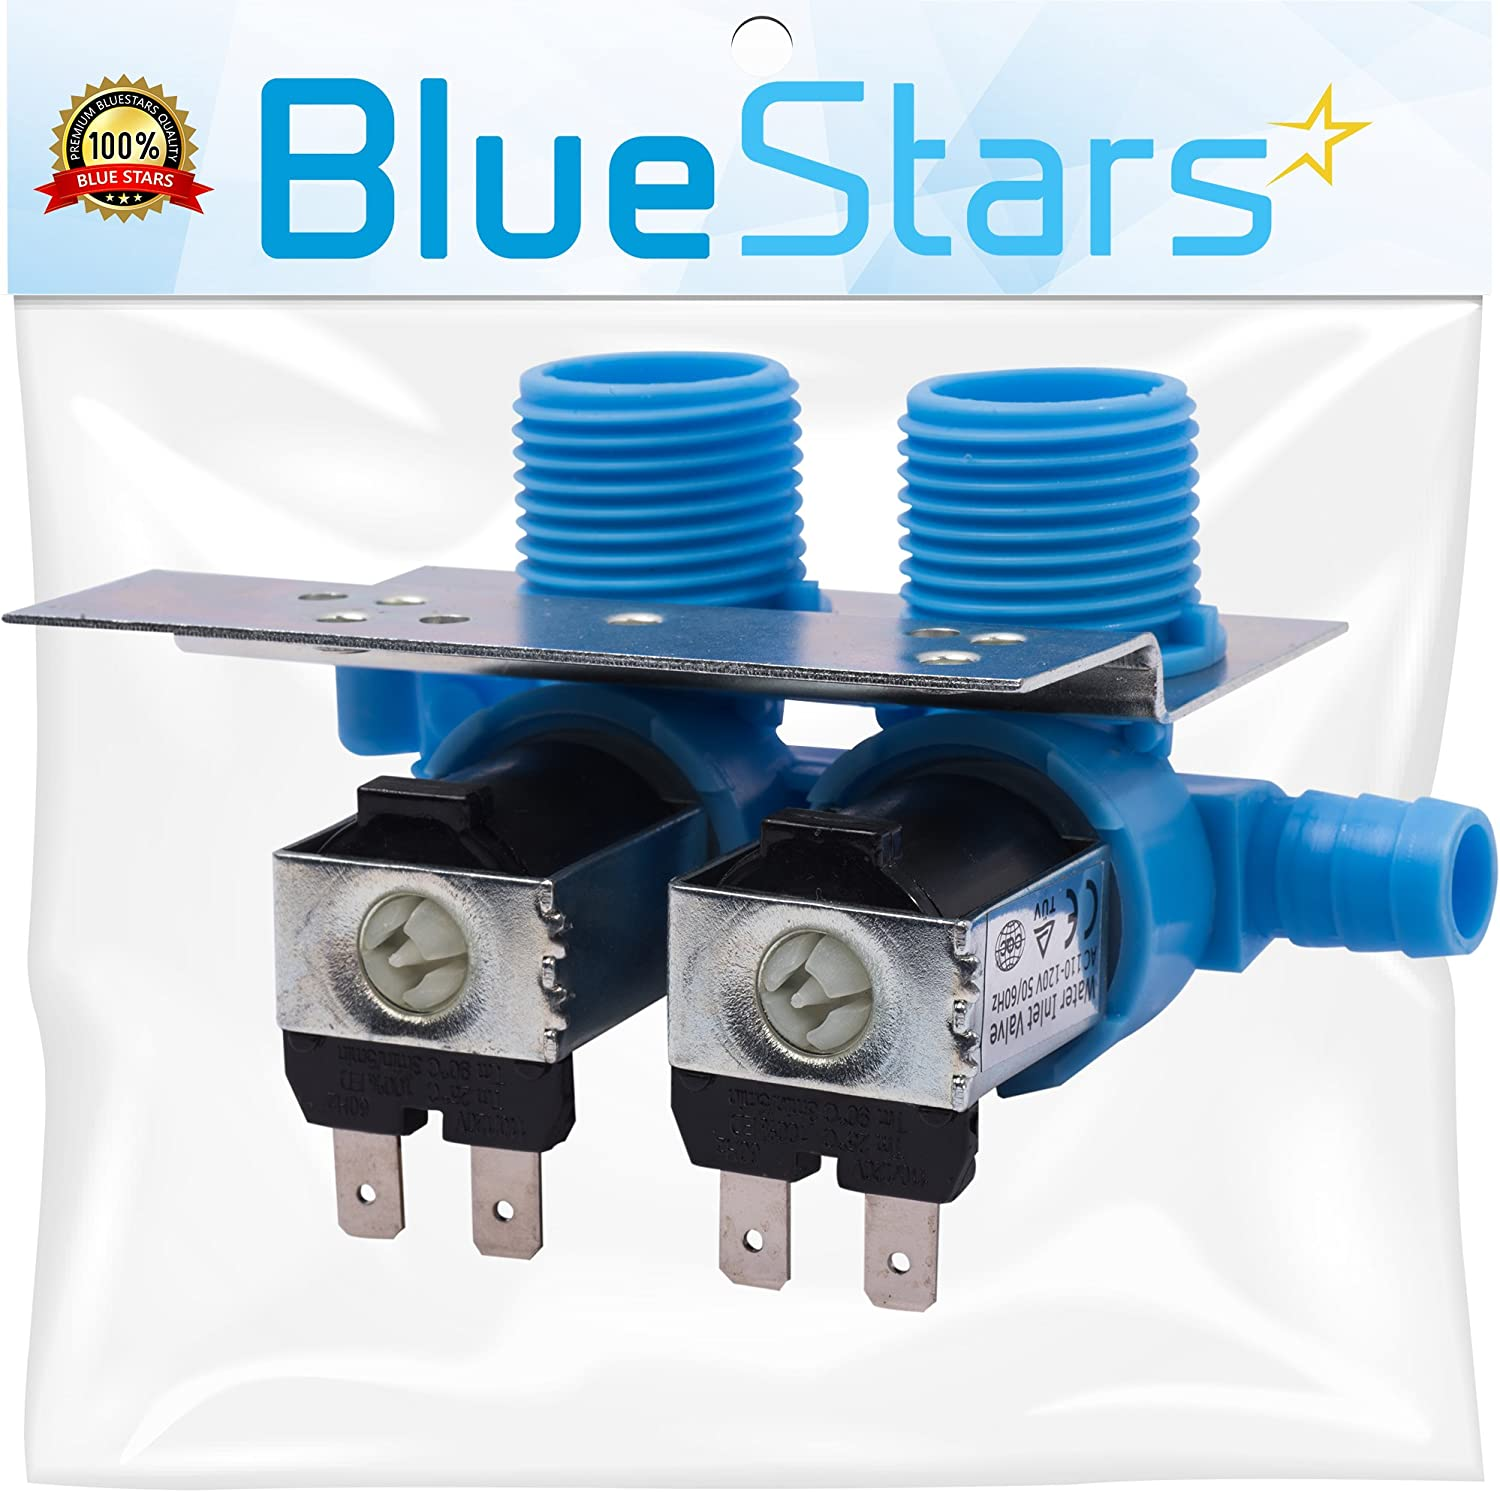 NEW 868761 WASHER WATER INLET VALVE FITS WHIRLPOOL KENMORE ROPER SEARS